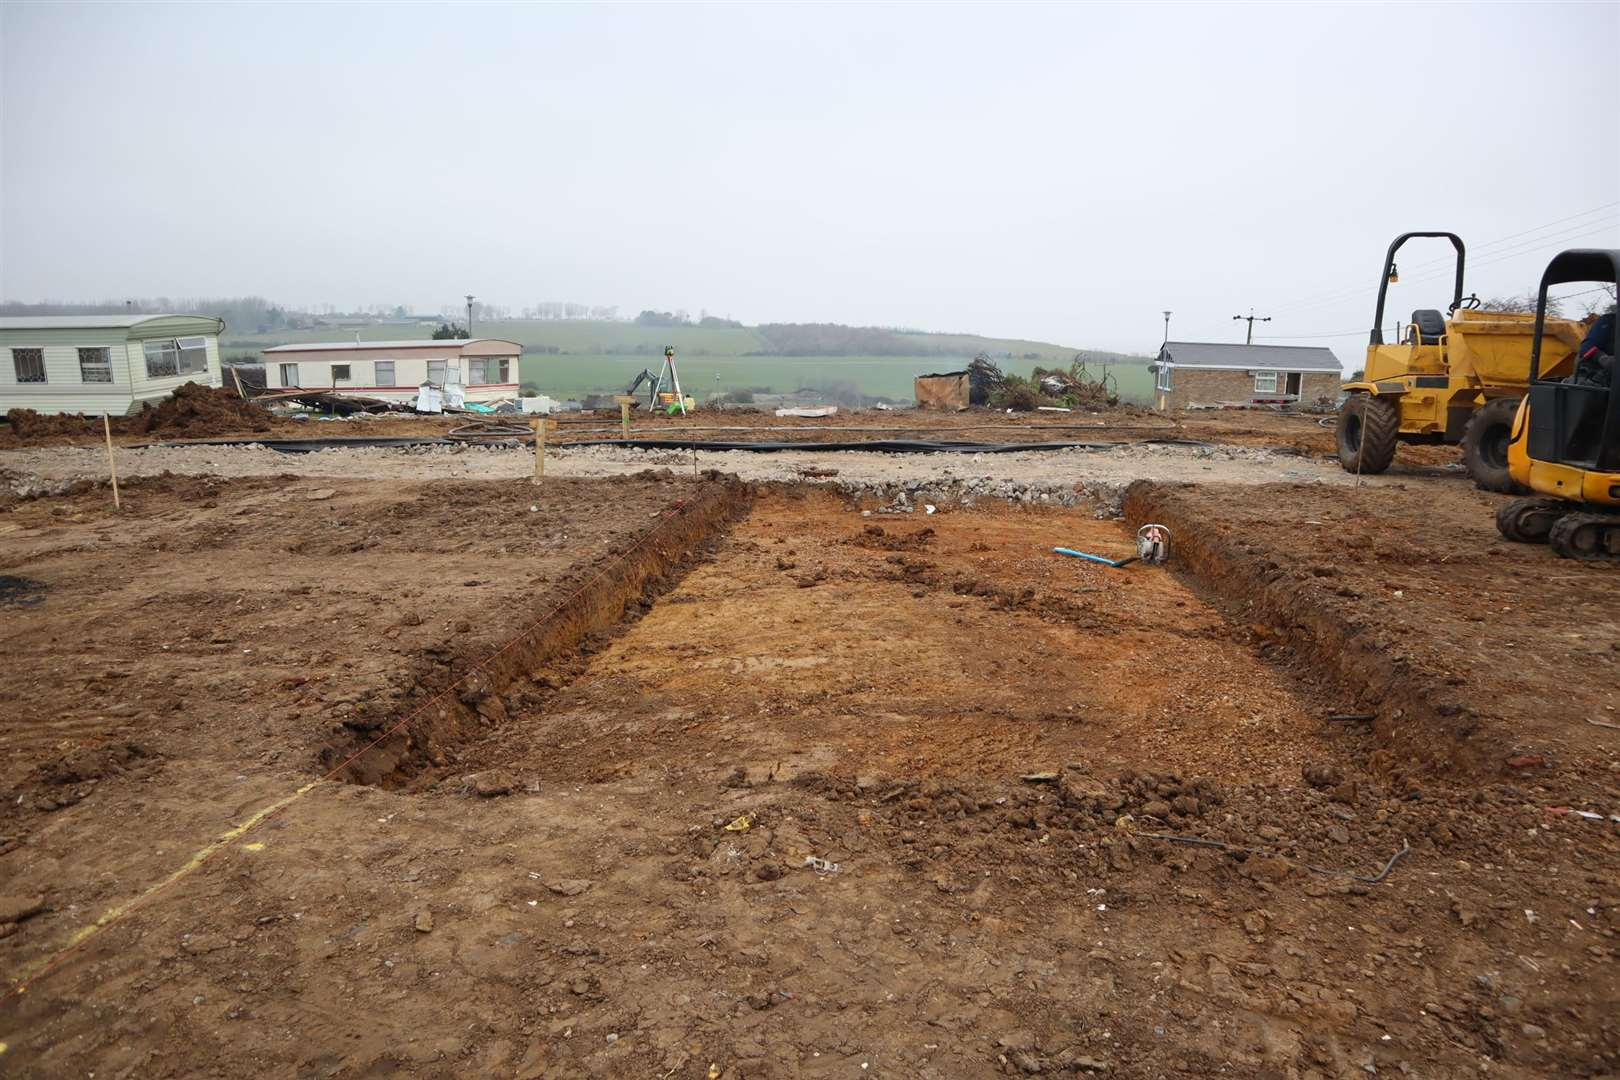 Digging foundations for new luxury lodges at Eastchurch Holiday Centre on the Isle of Sheppey